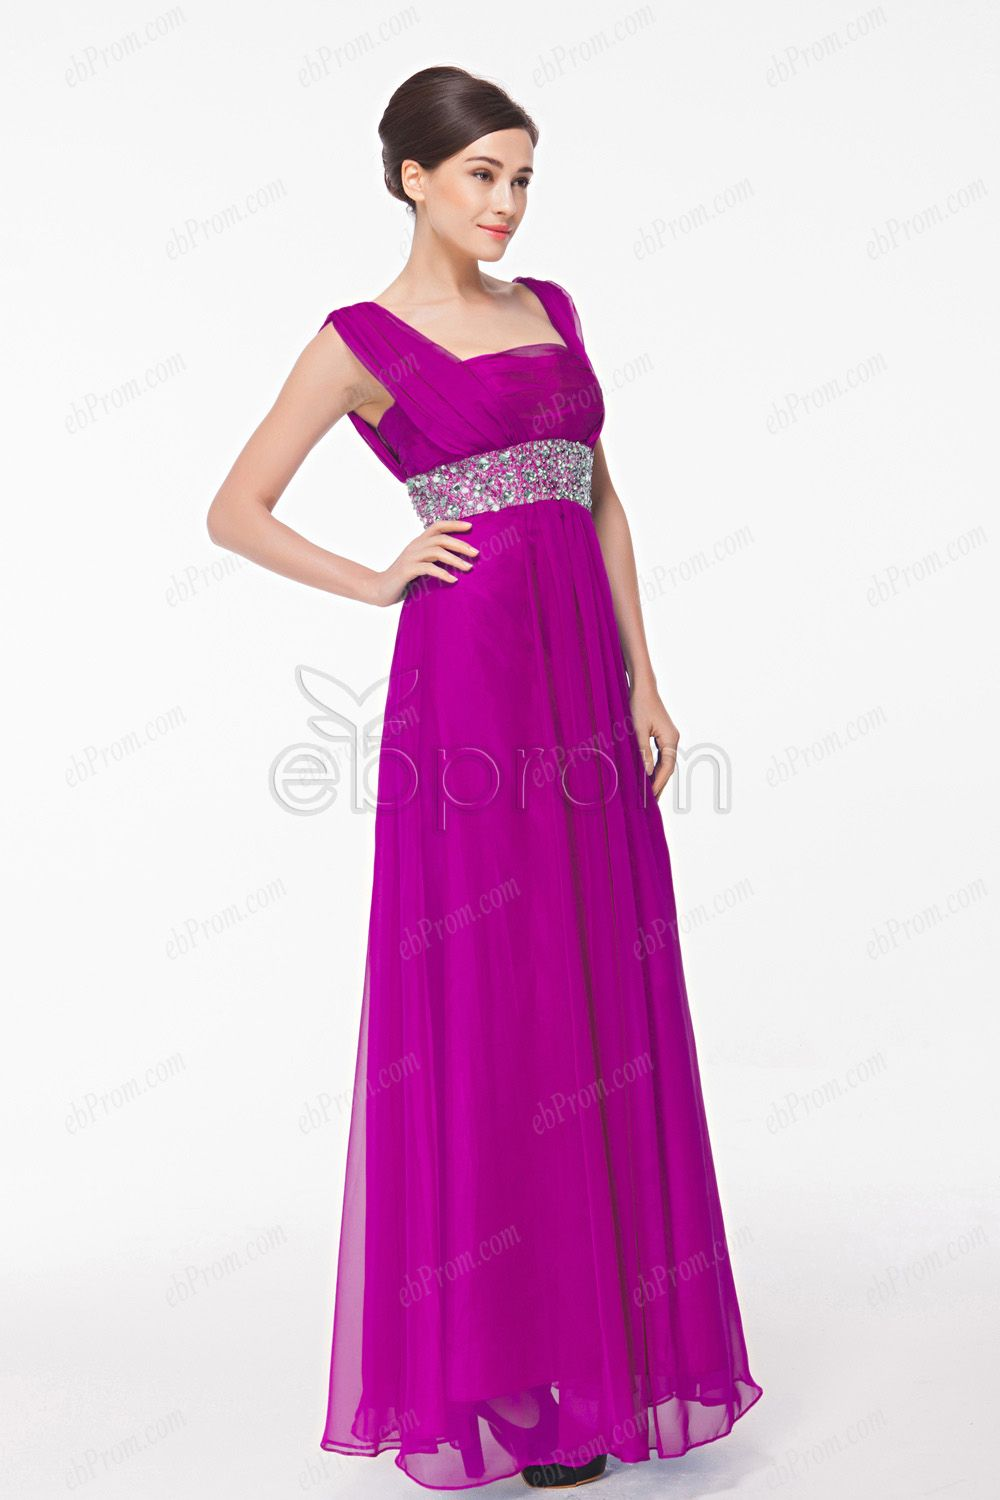 096b466cbc58 Square Neck Straps Fuchsia Chiffon Mother of the Bride Dresses Plus Size!  Low Cut Jeans